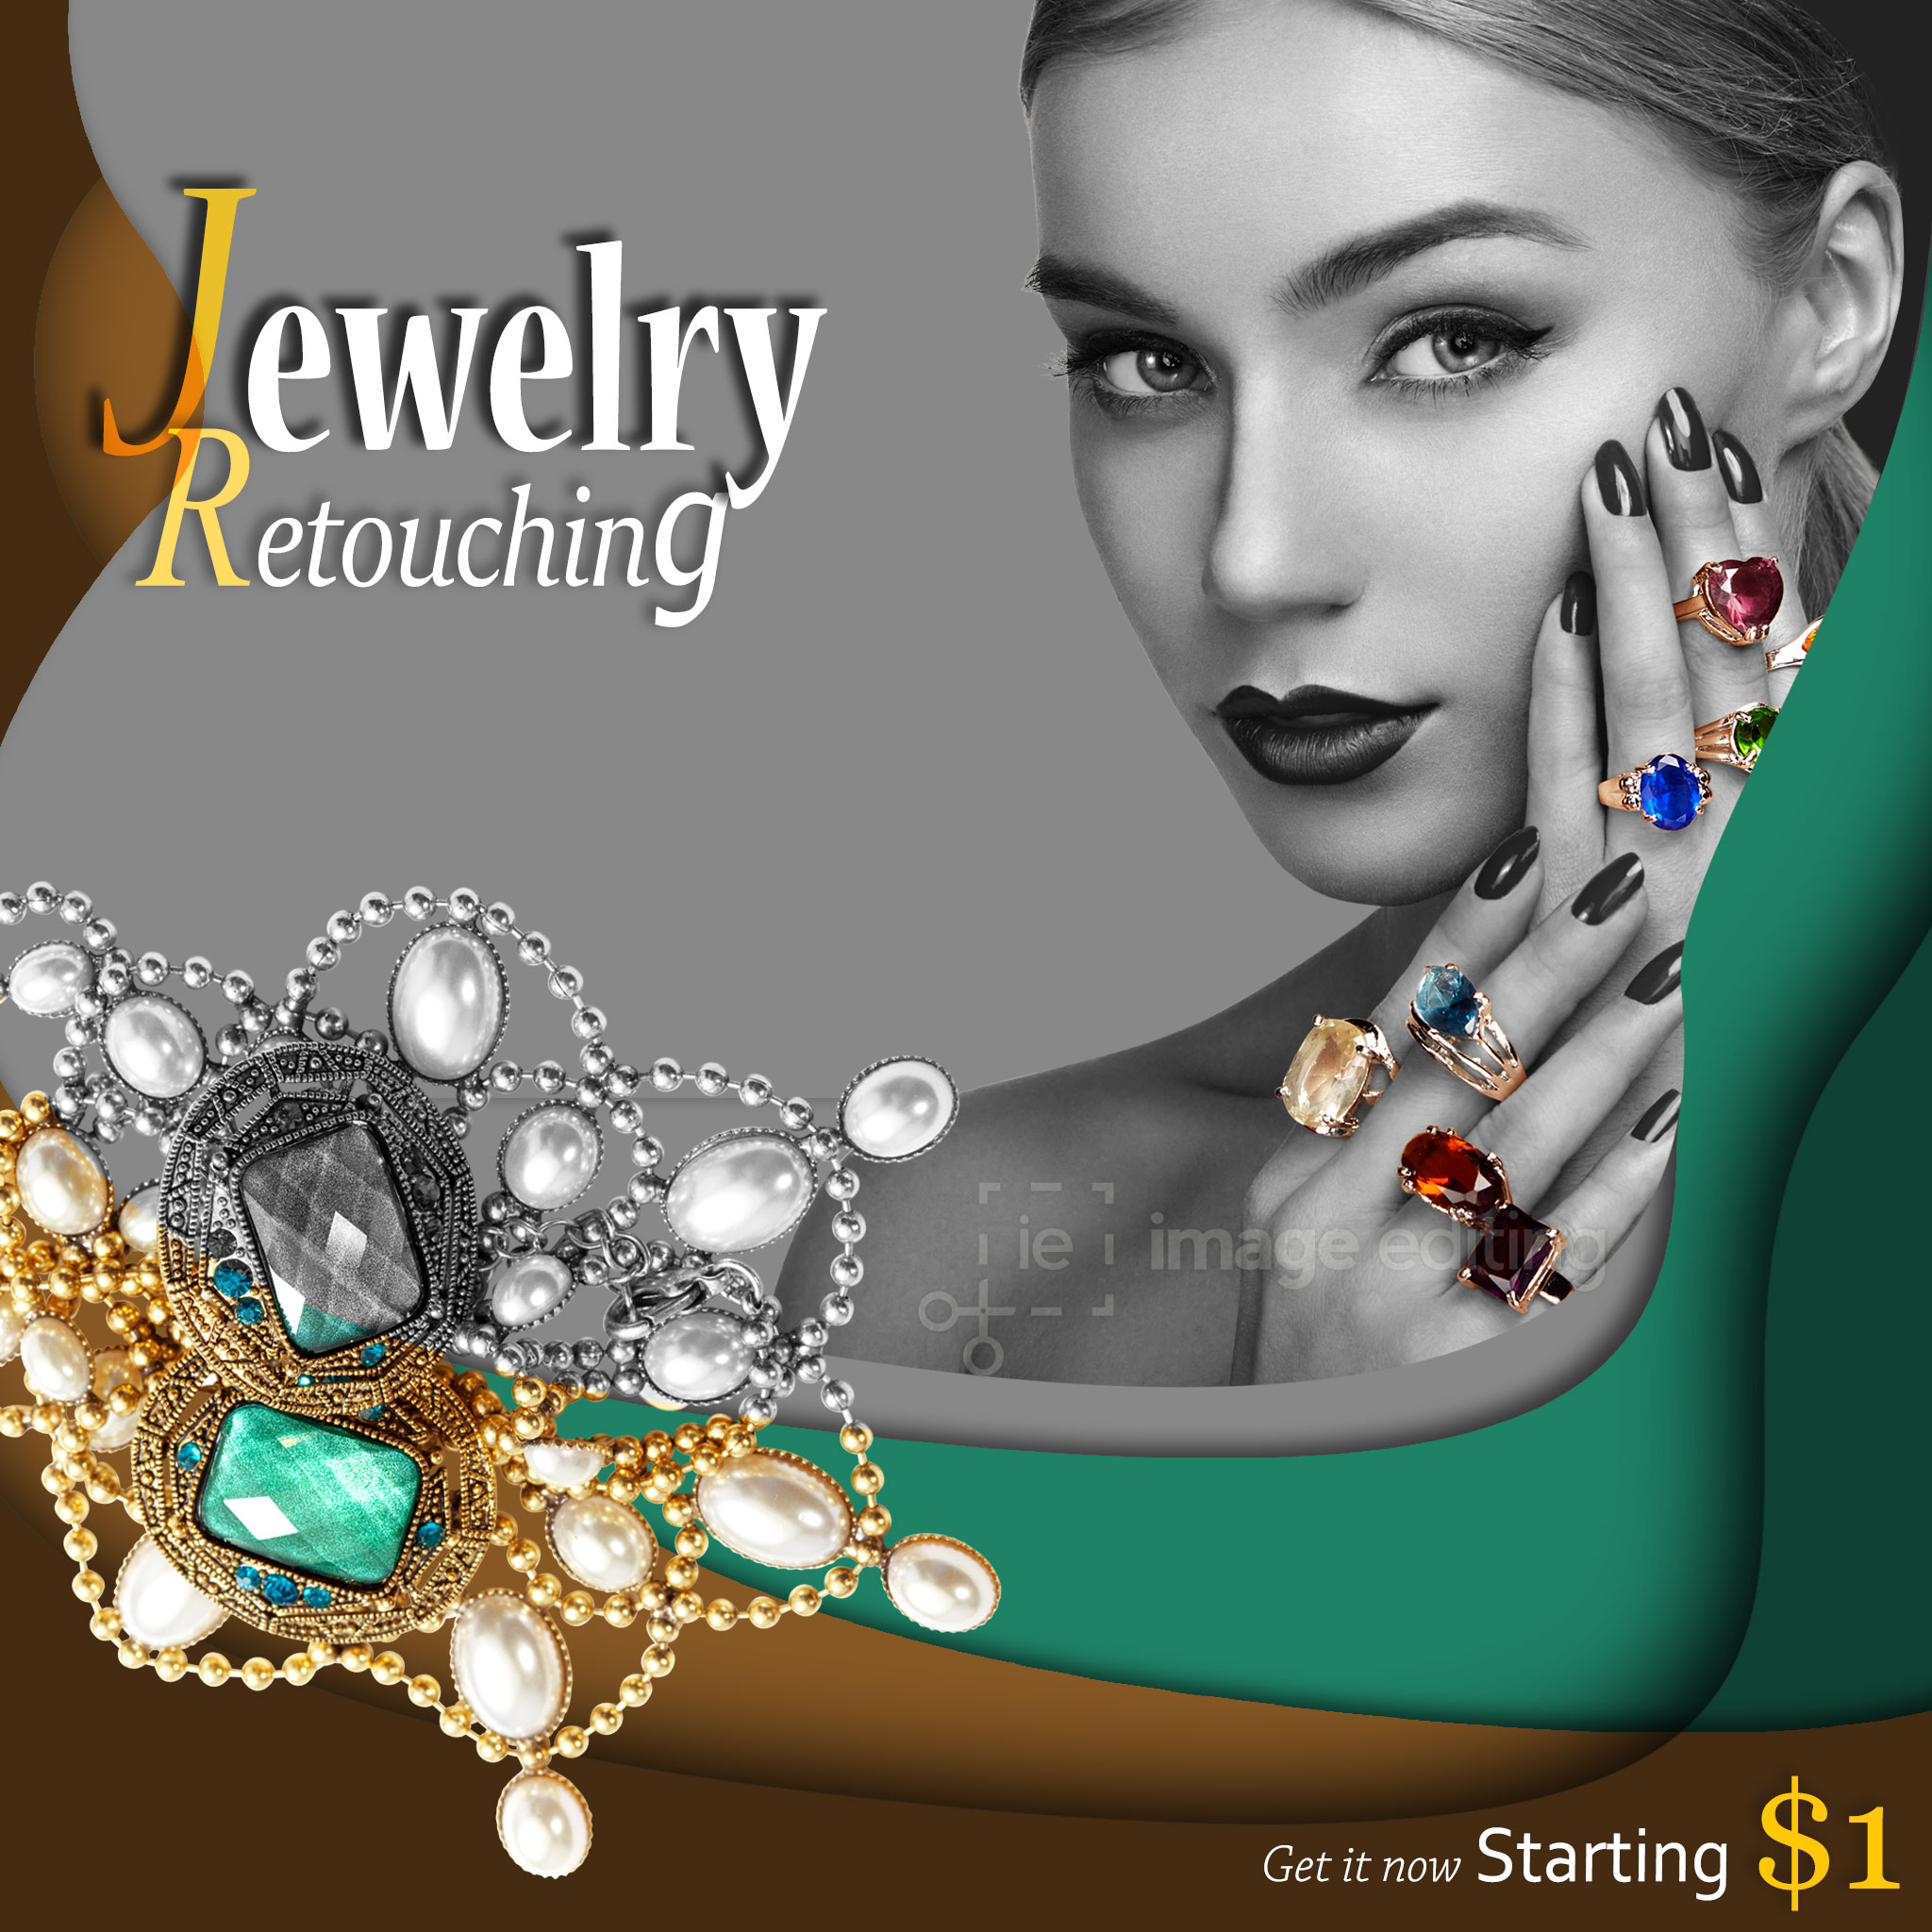 Jewelry Retouching Sample 1